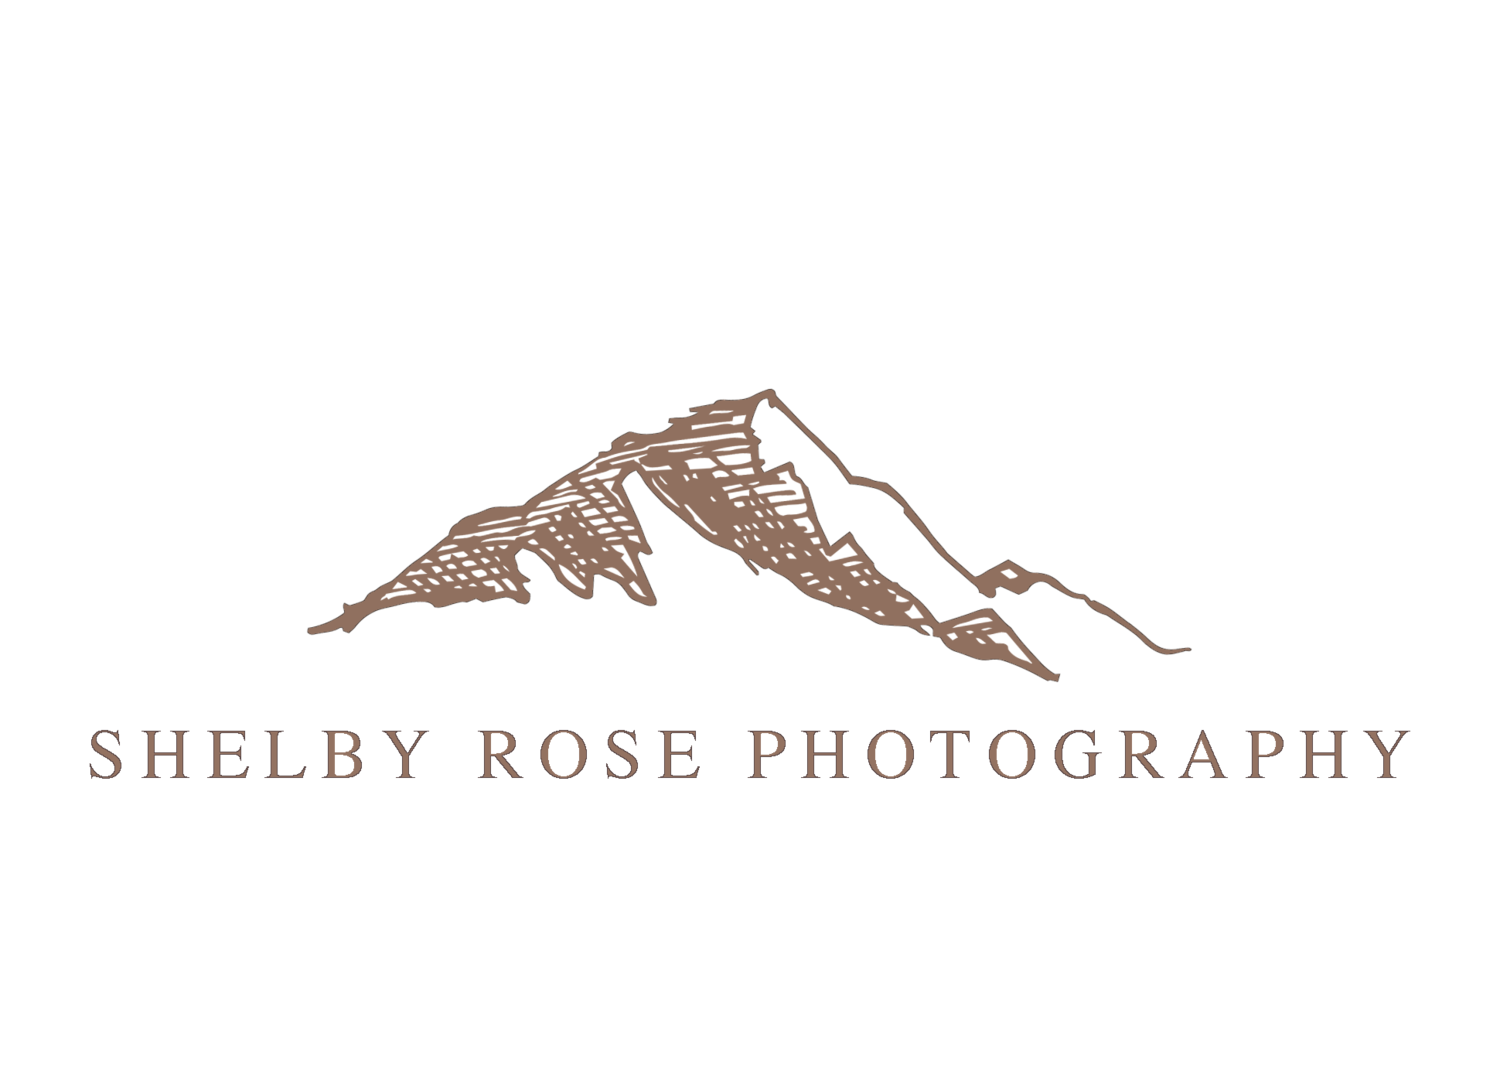 SHELBY ROSE PHOTOGRAPHY